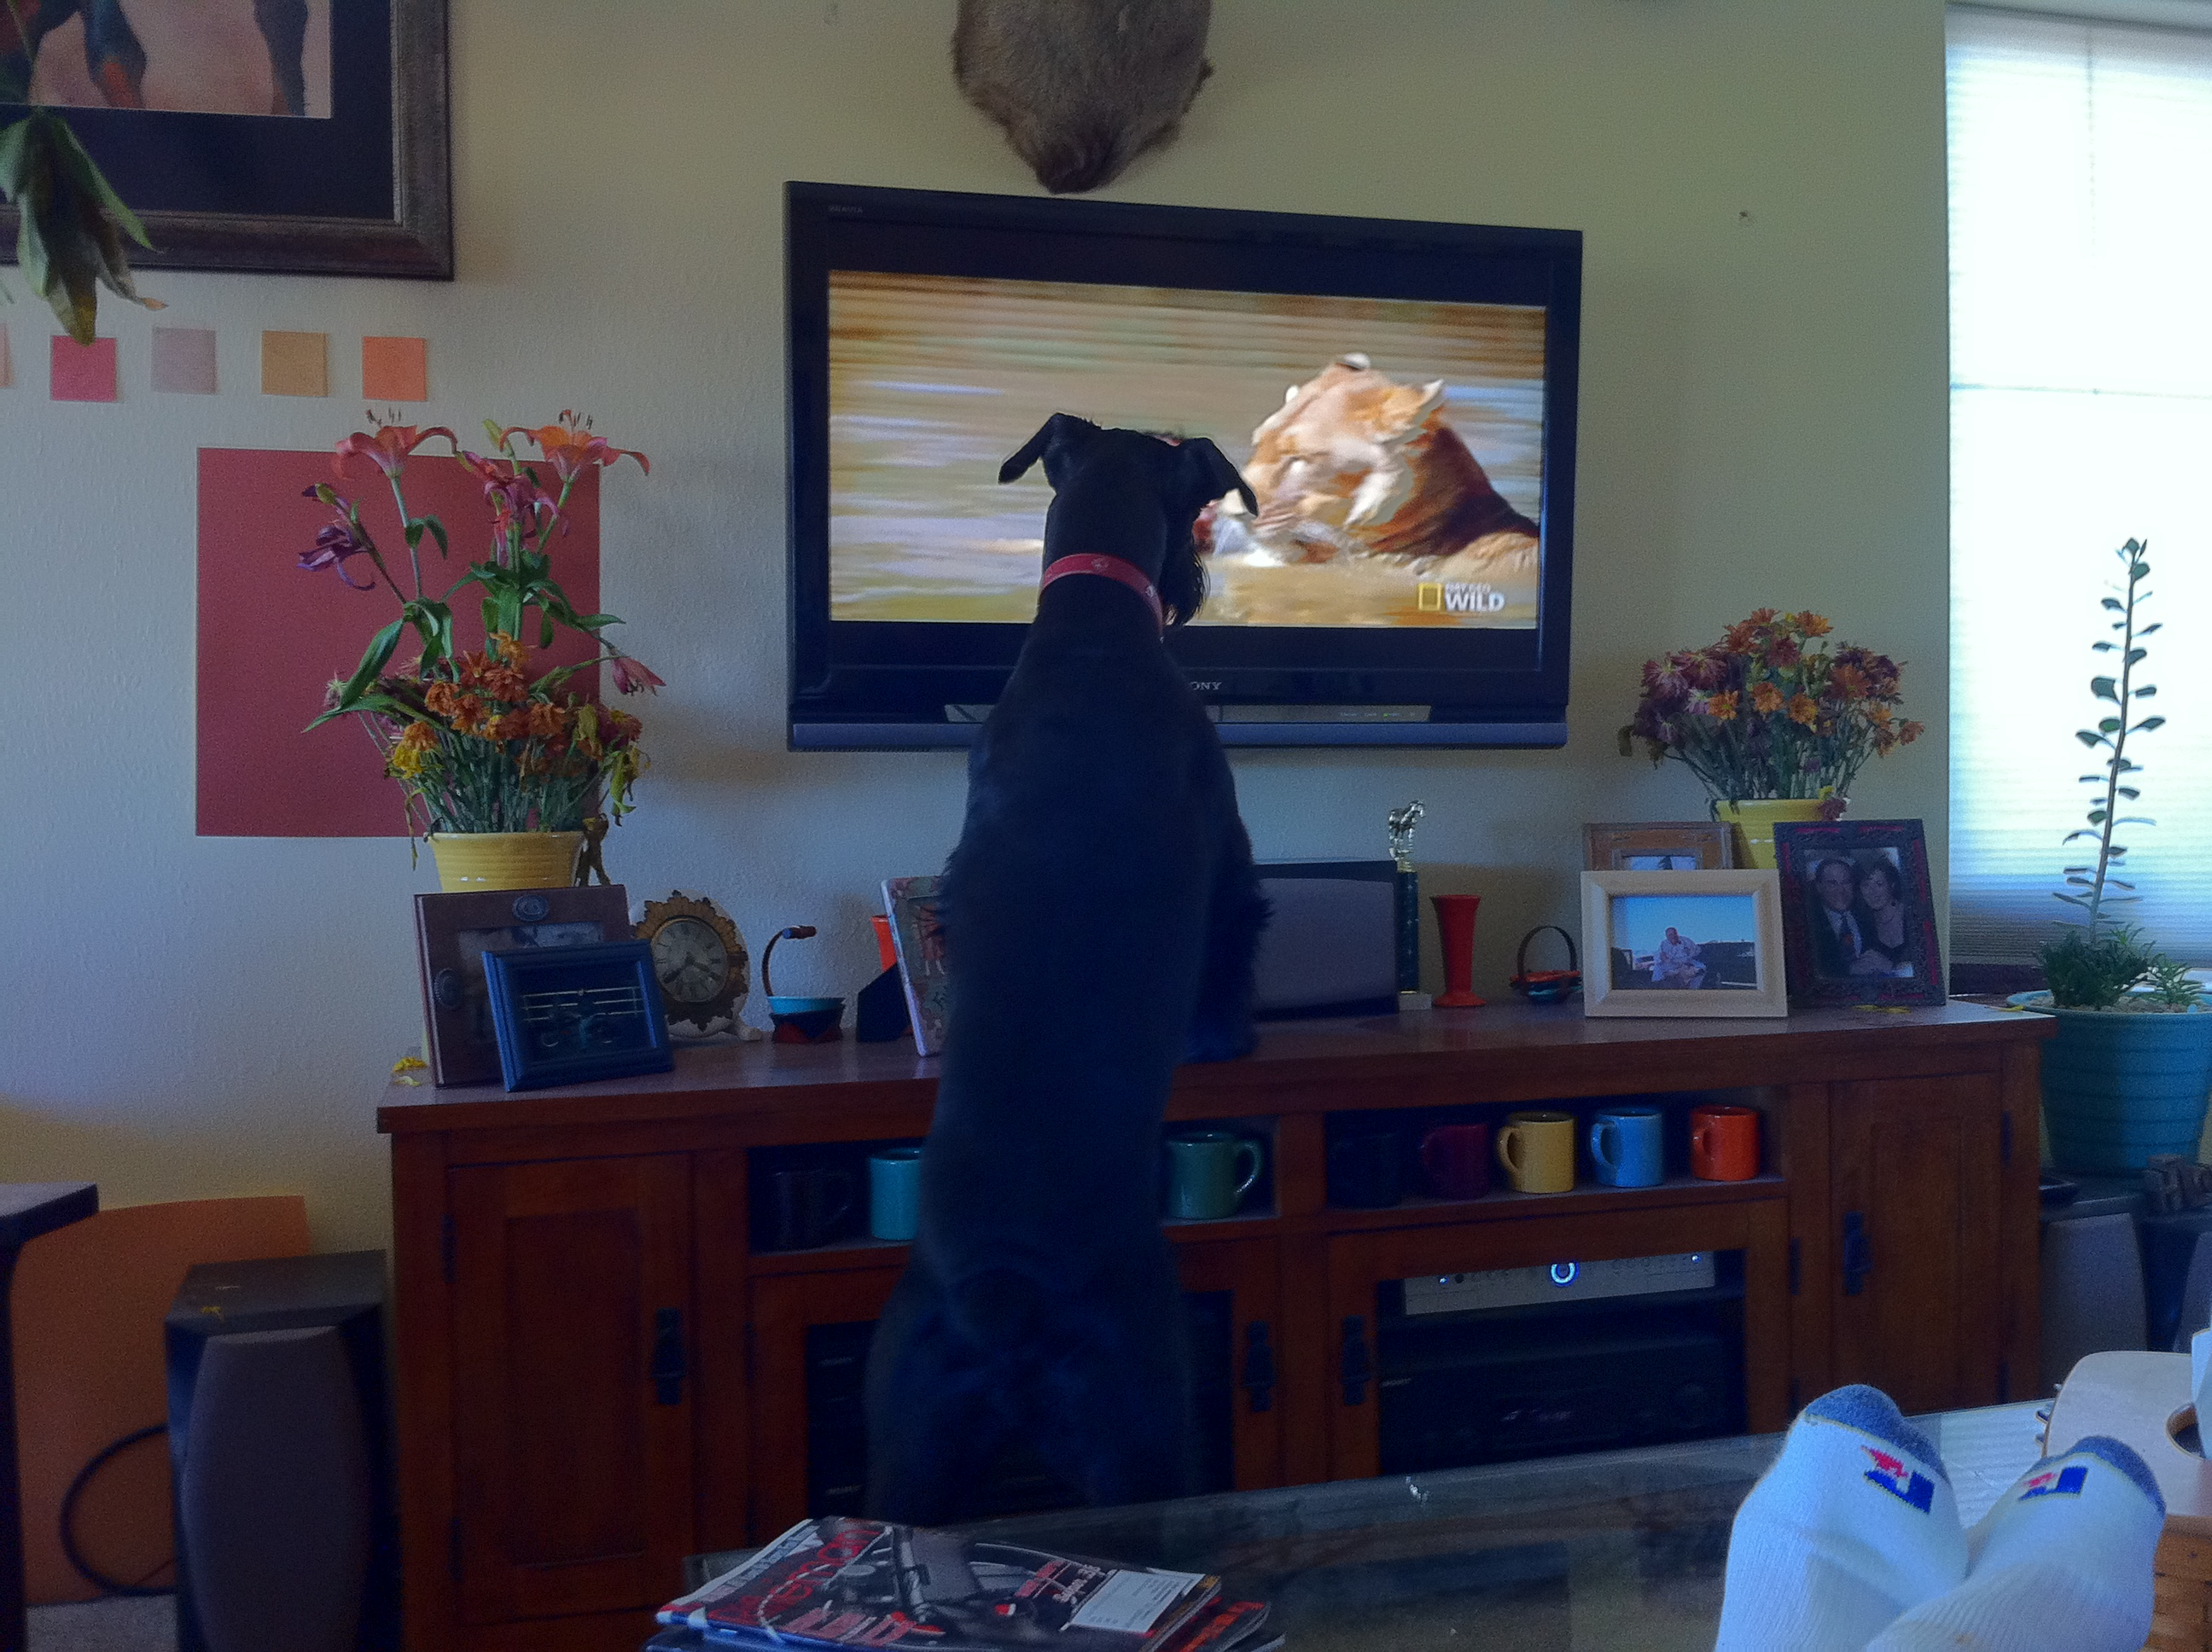 Bette discovered TV